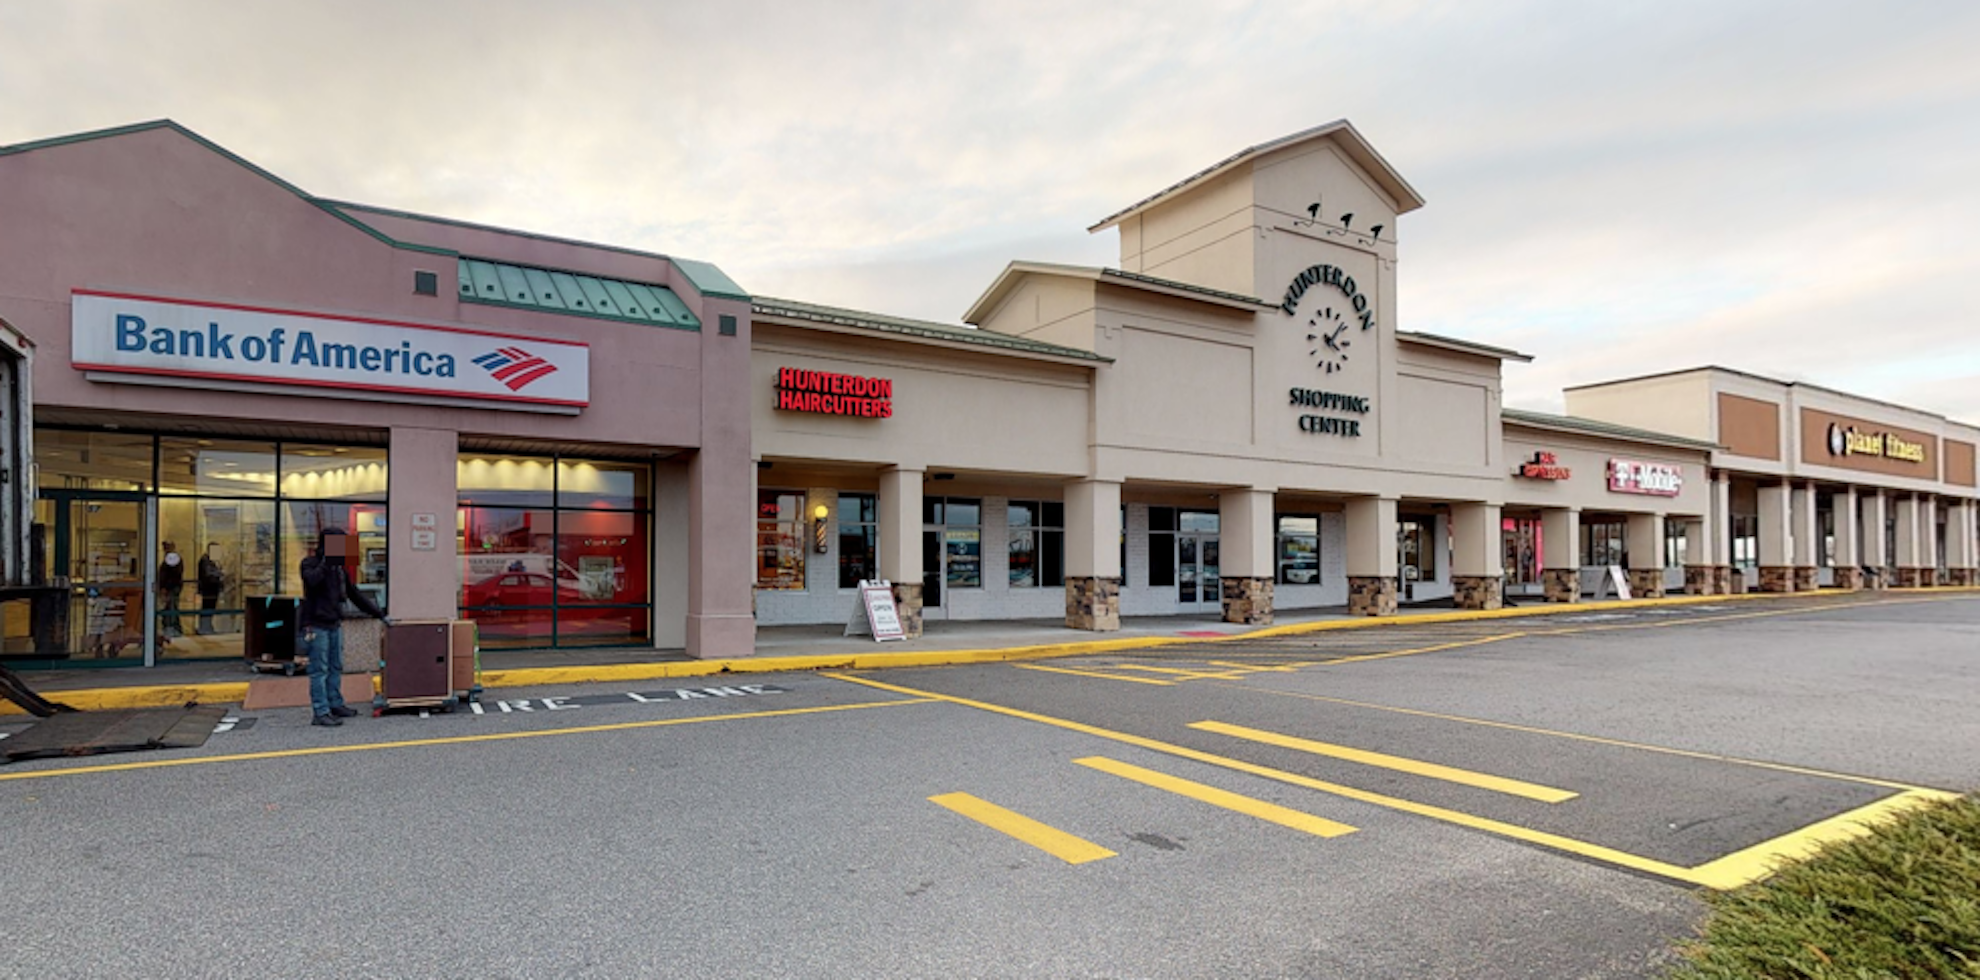 Bank of America financial center with drive-thru ATM | 59 Reaville Ave, Flemington, NJ 08822